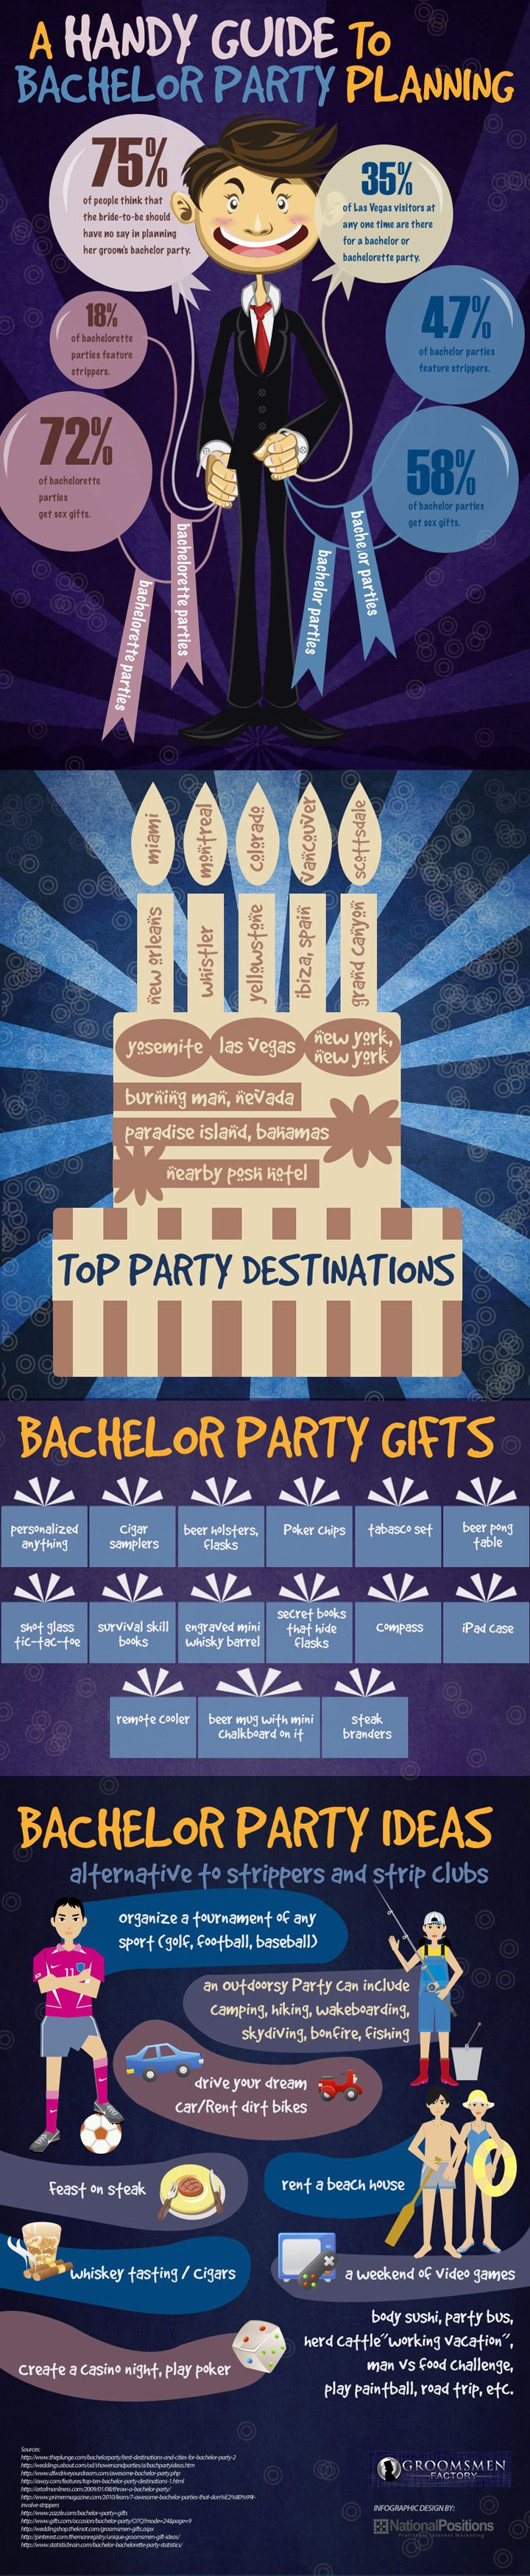 A Handy Guide To Bachelor Party Planning    Having a bachelor party is one of the parts of wedding planning that many men look forward to, especially the groomsmen. Contrary to popular movies and beliefs, not all bachelor parties have to be about strippers and drunken antics.